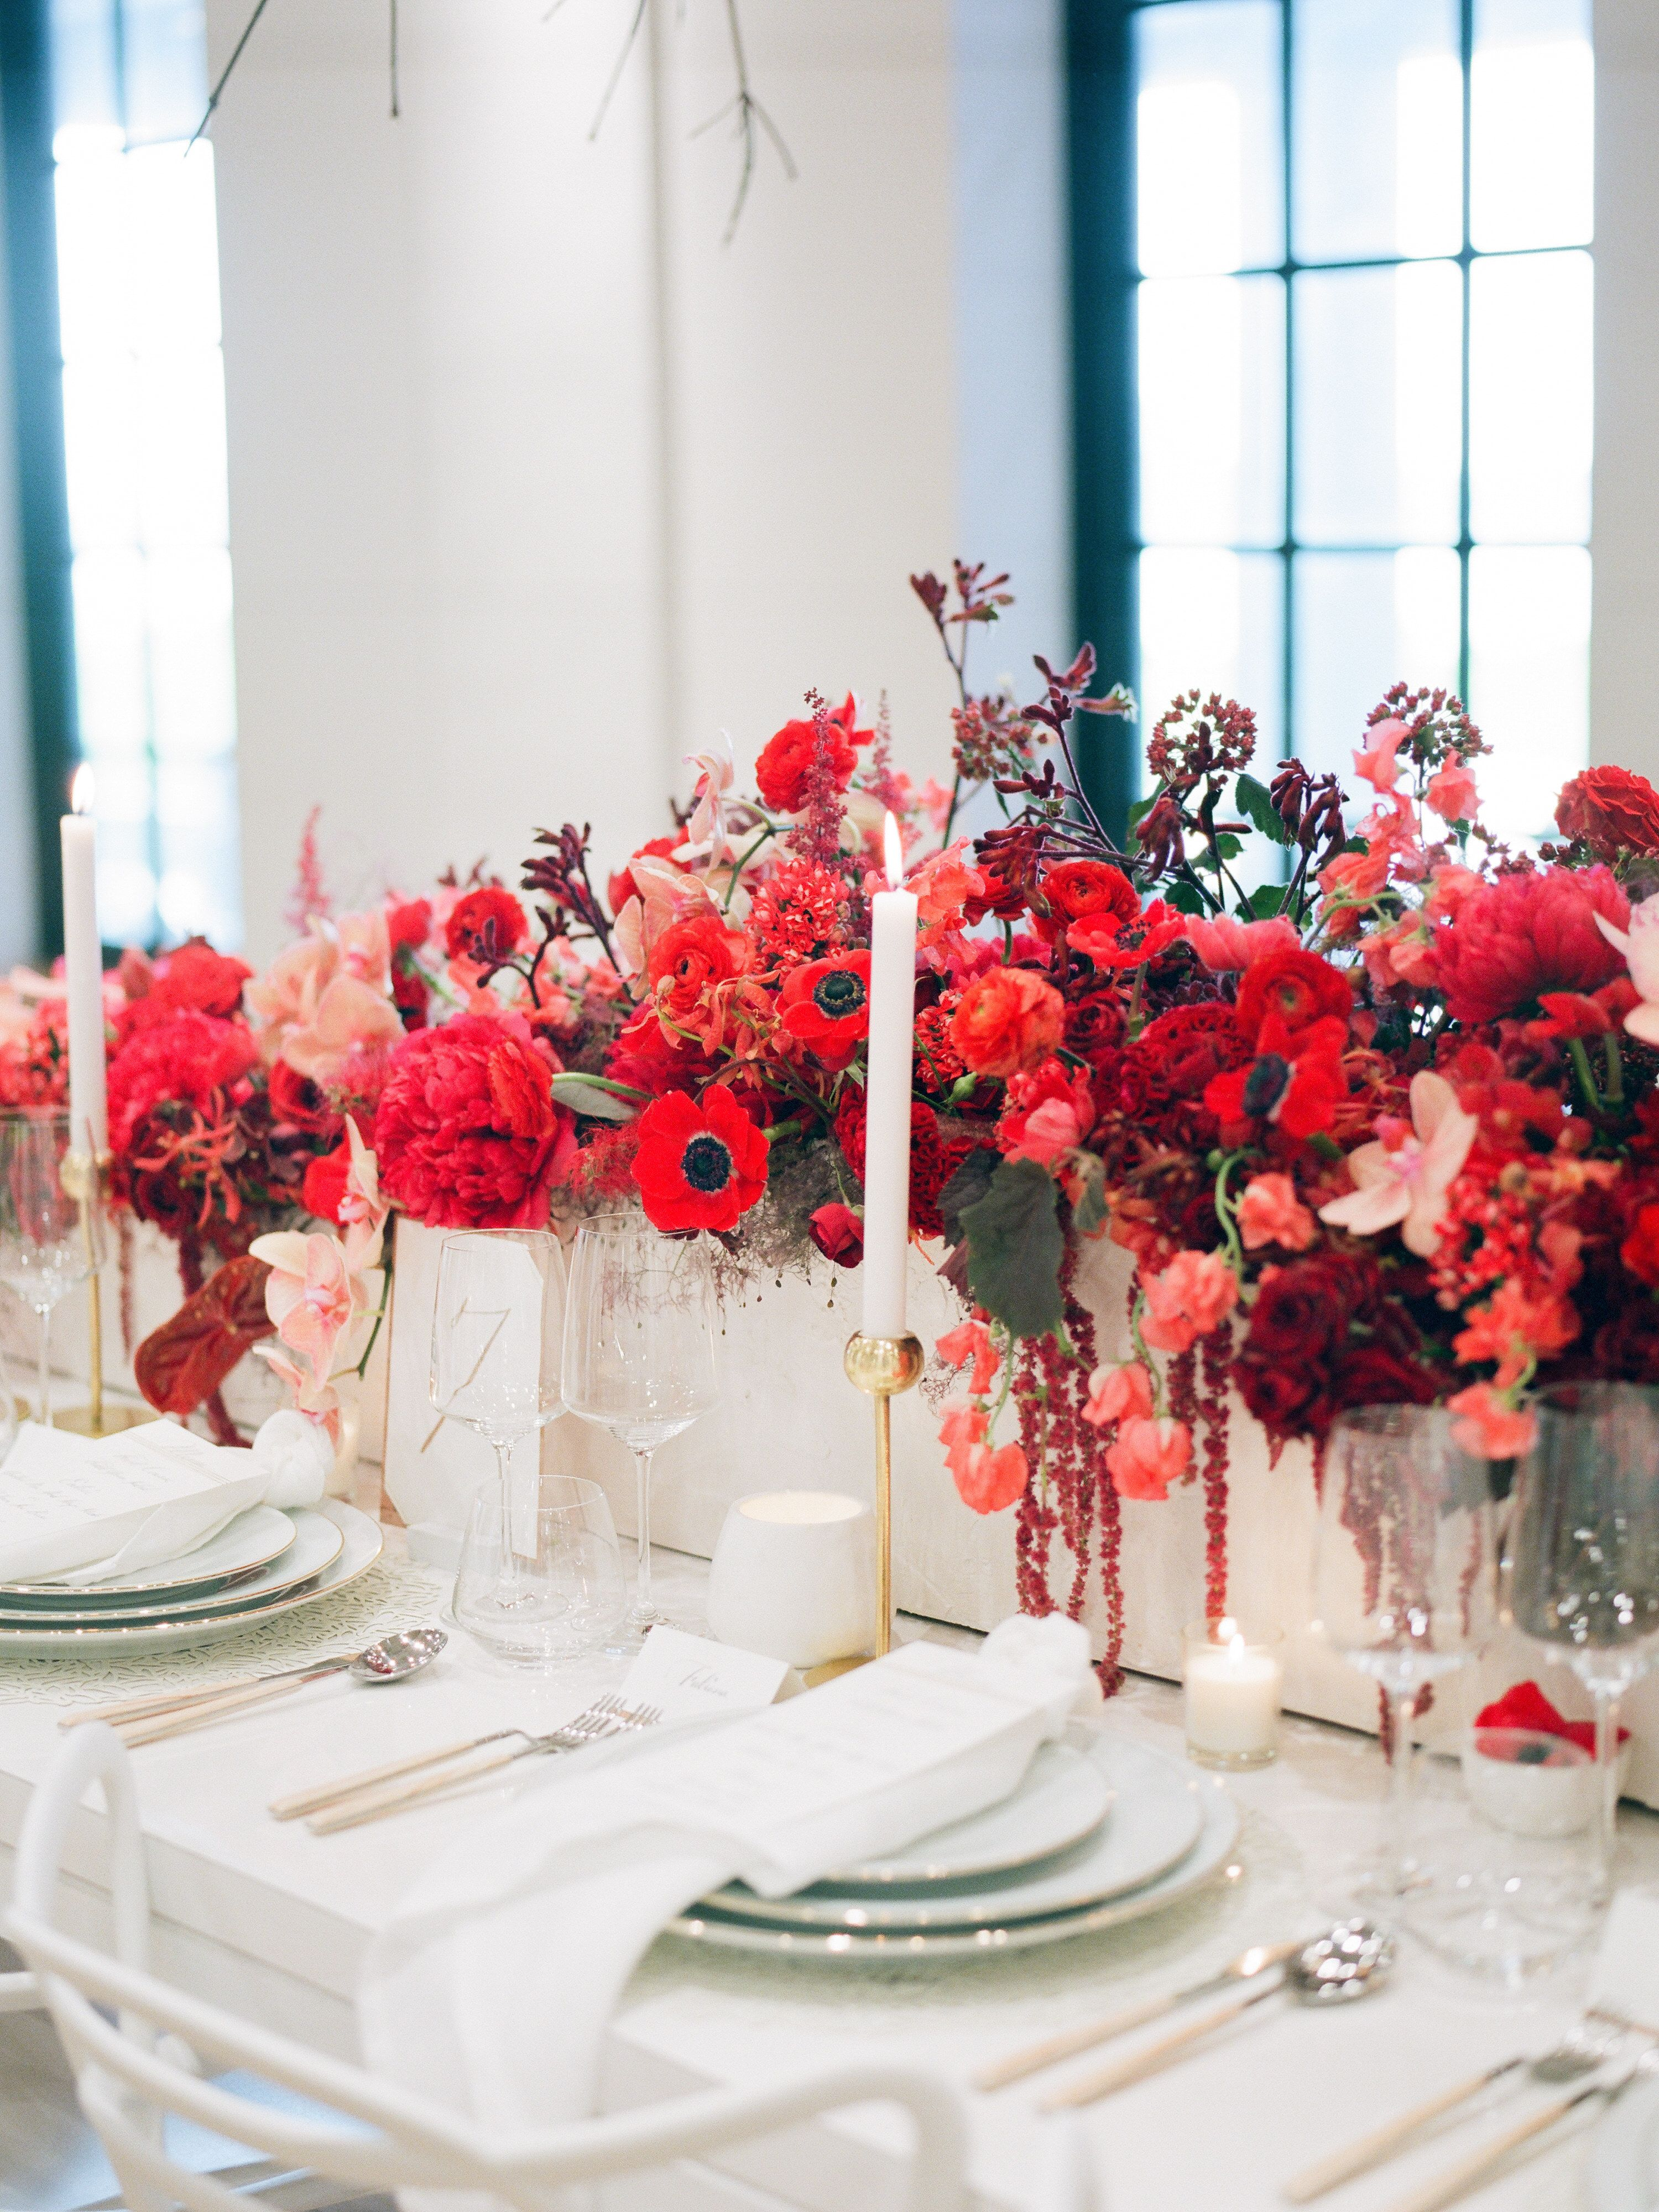 New York City Wedding Photographer Flowers By Rosewoodproductions Tumblr Com 501 Union Photo By Lauren Spine Wedding Flowers City Wedding Cheap Wedding Flowers